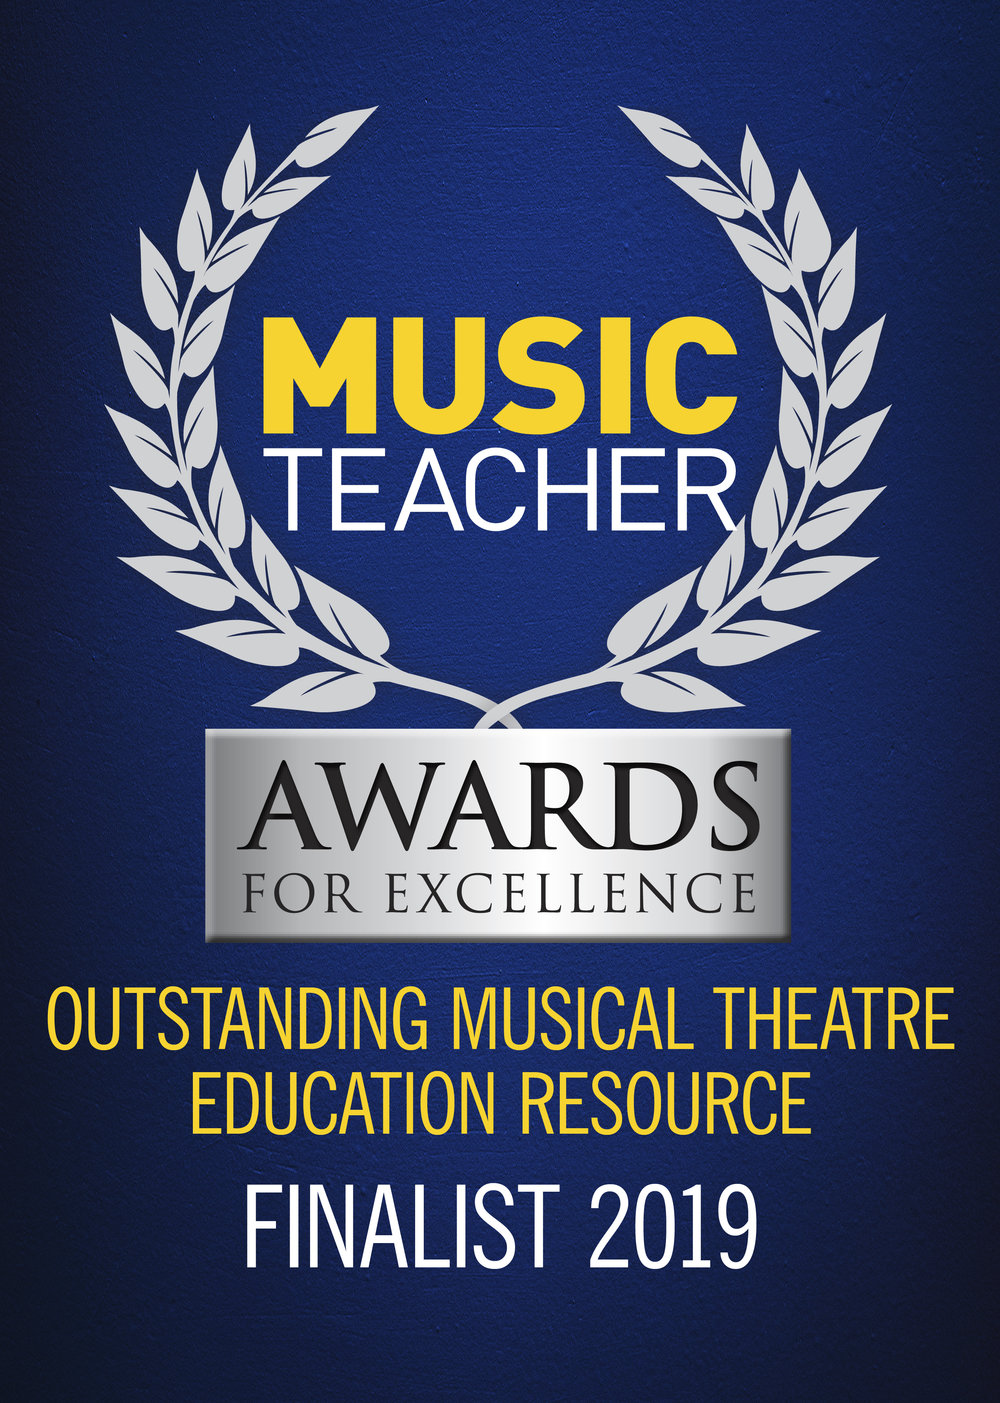 It is with great pride that we can announce Stage Invaders are finalists in the 2019 Music Teacher Awards for Excellence